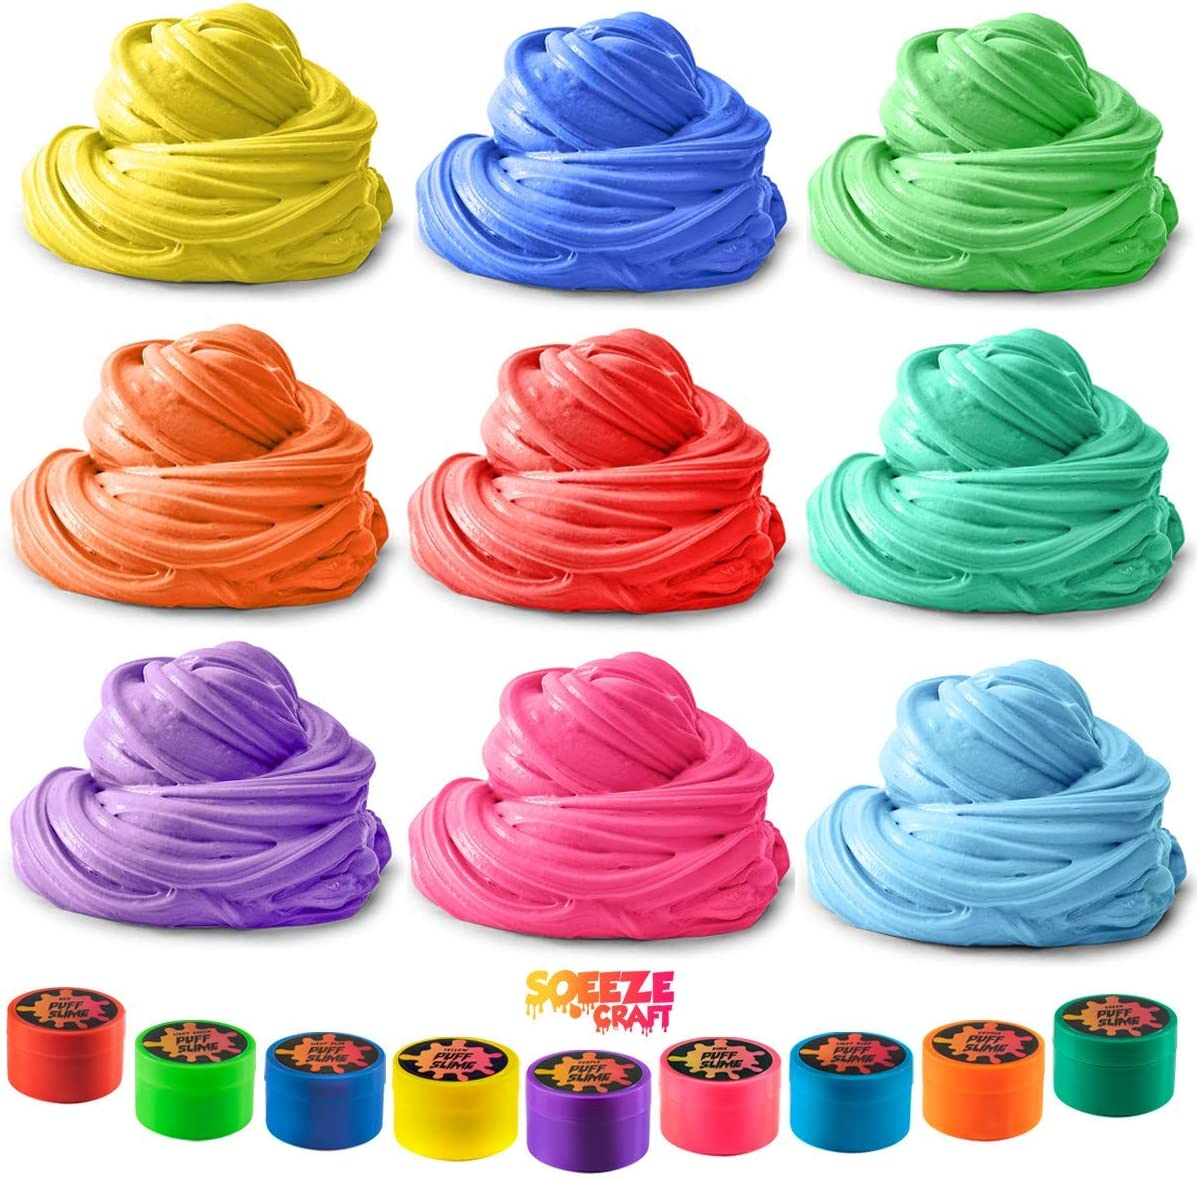 Squeeze Craft Puff Slime - 9 Many popular brands Pack Assorte Jumbo Mud Putty NEW before selling Fluffy